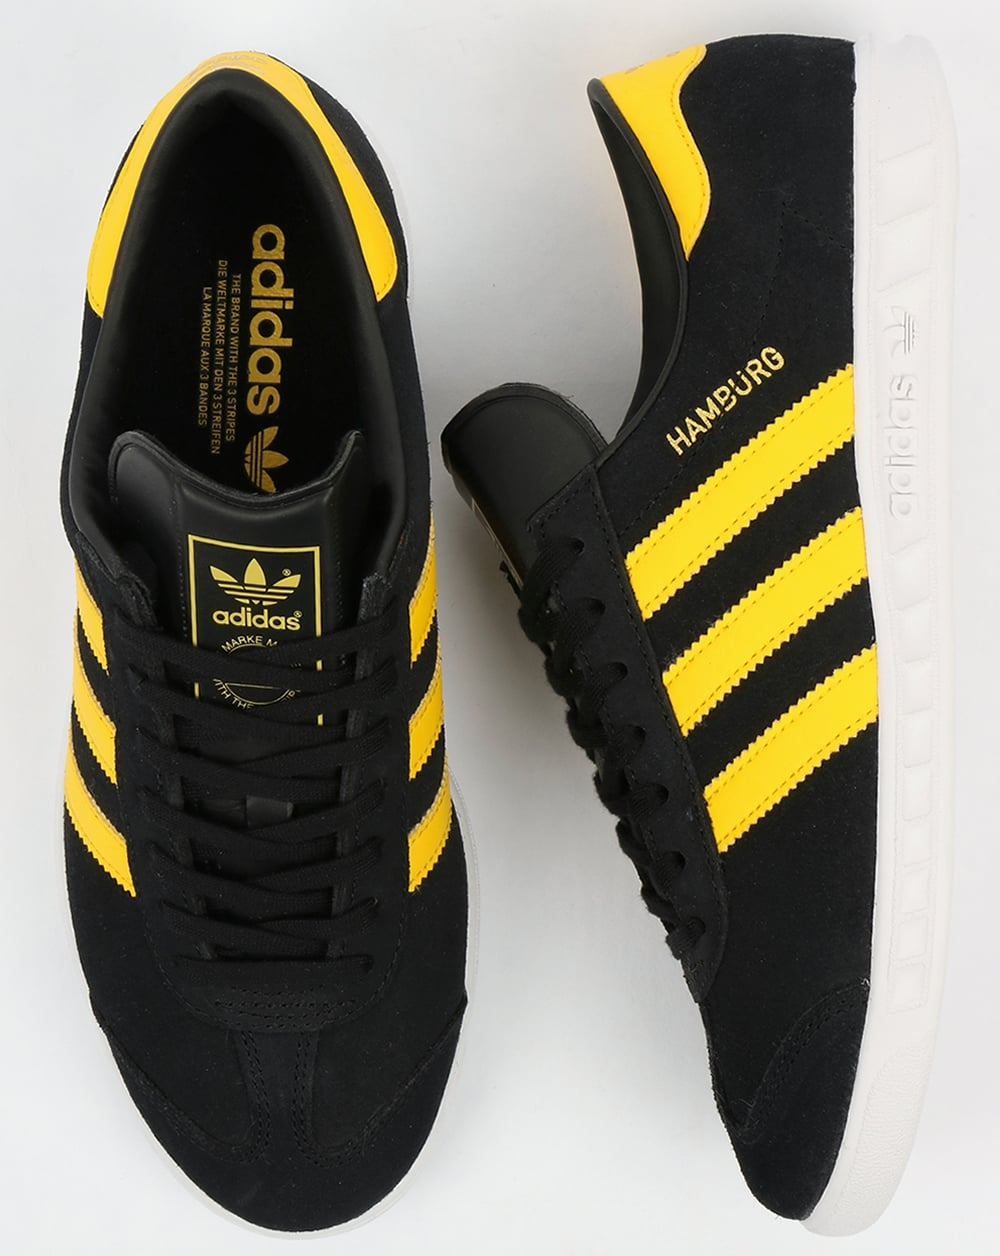 adidas hamburg black and yellow